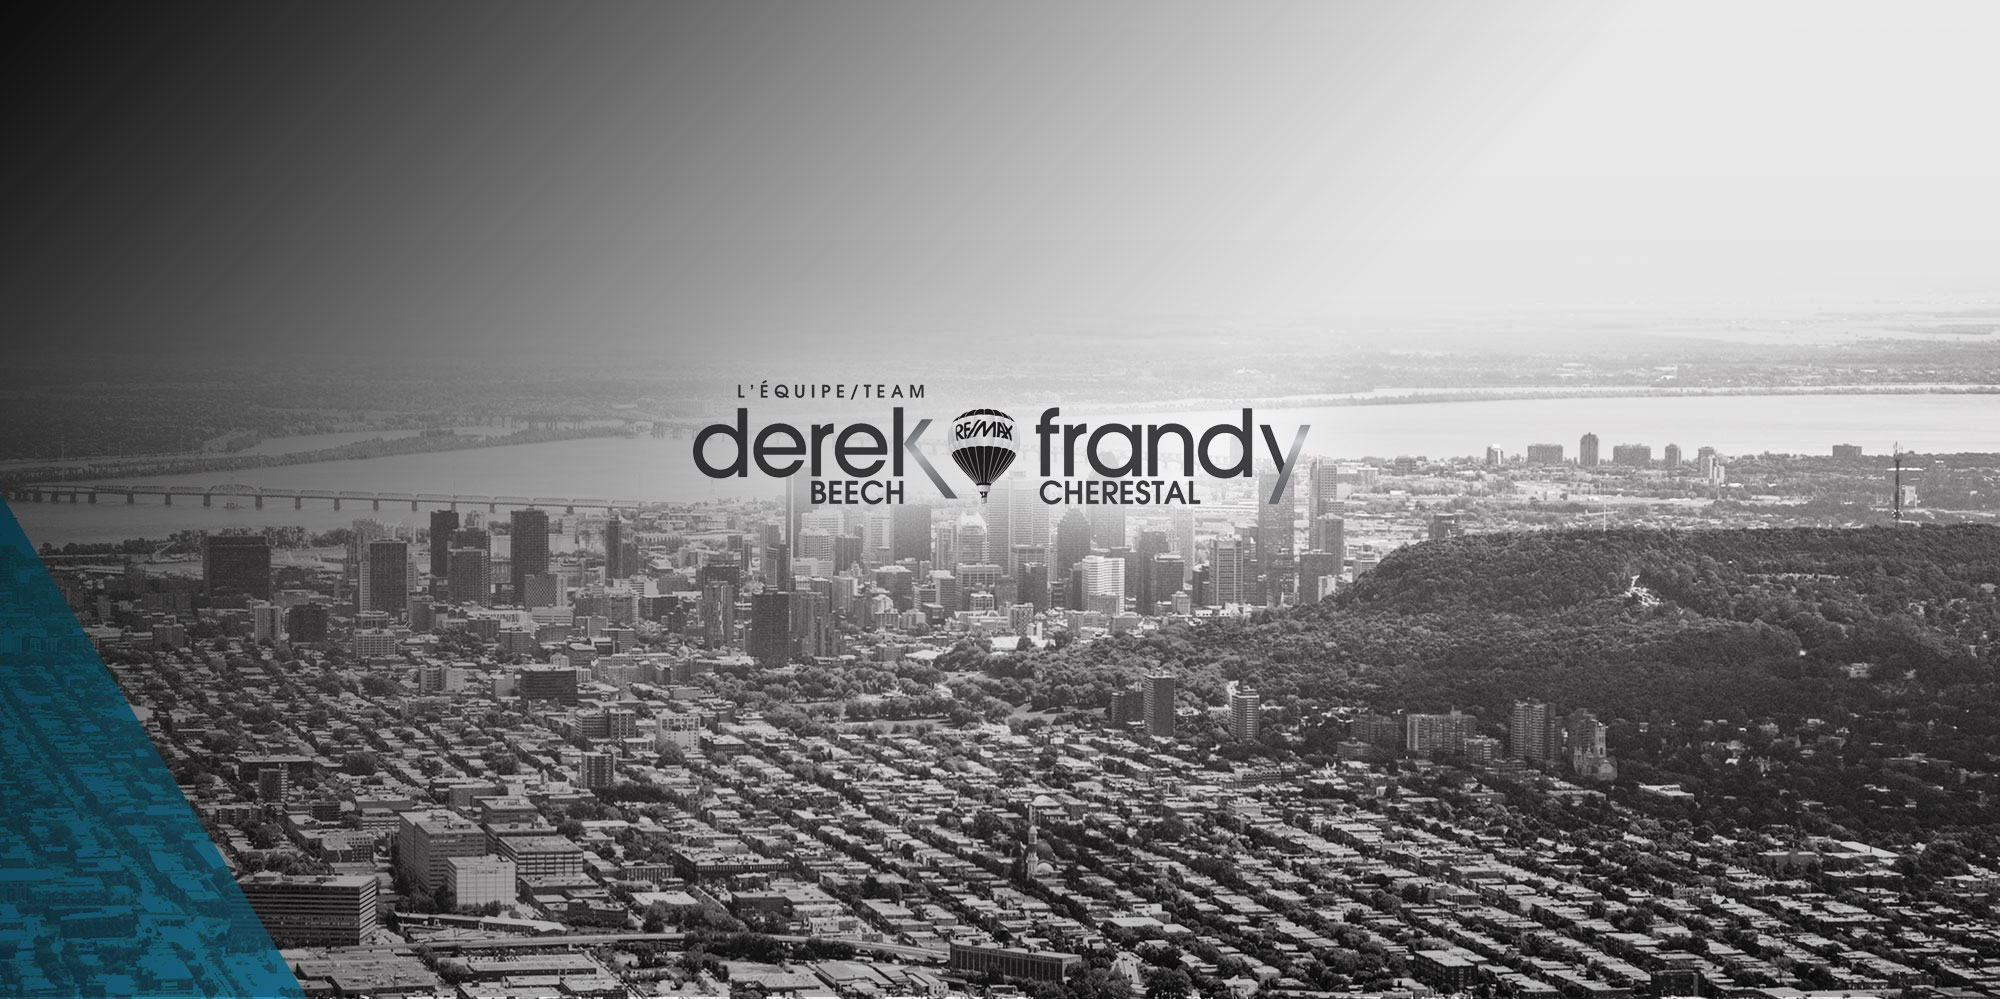 Team Derek & Frandy